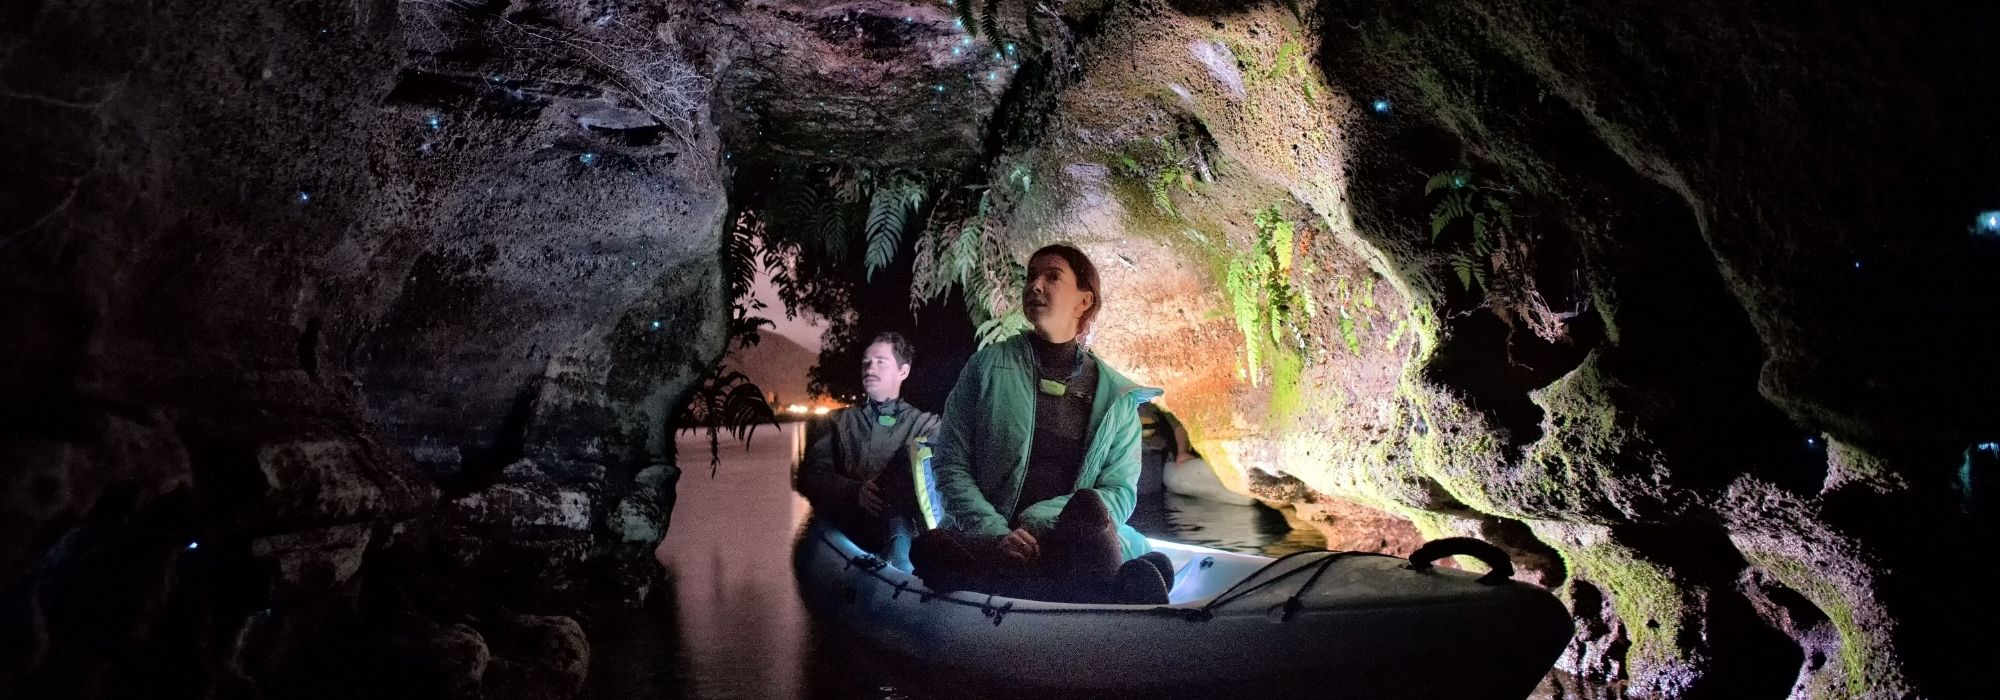 Night-time experiences you won't forget